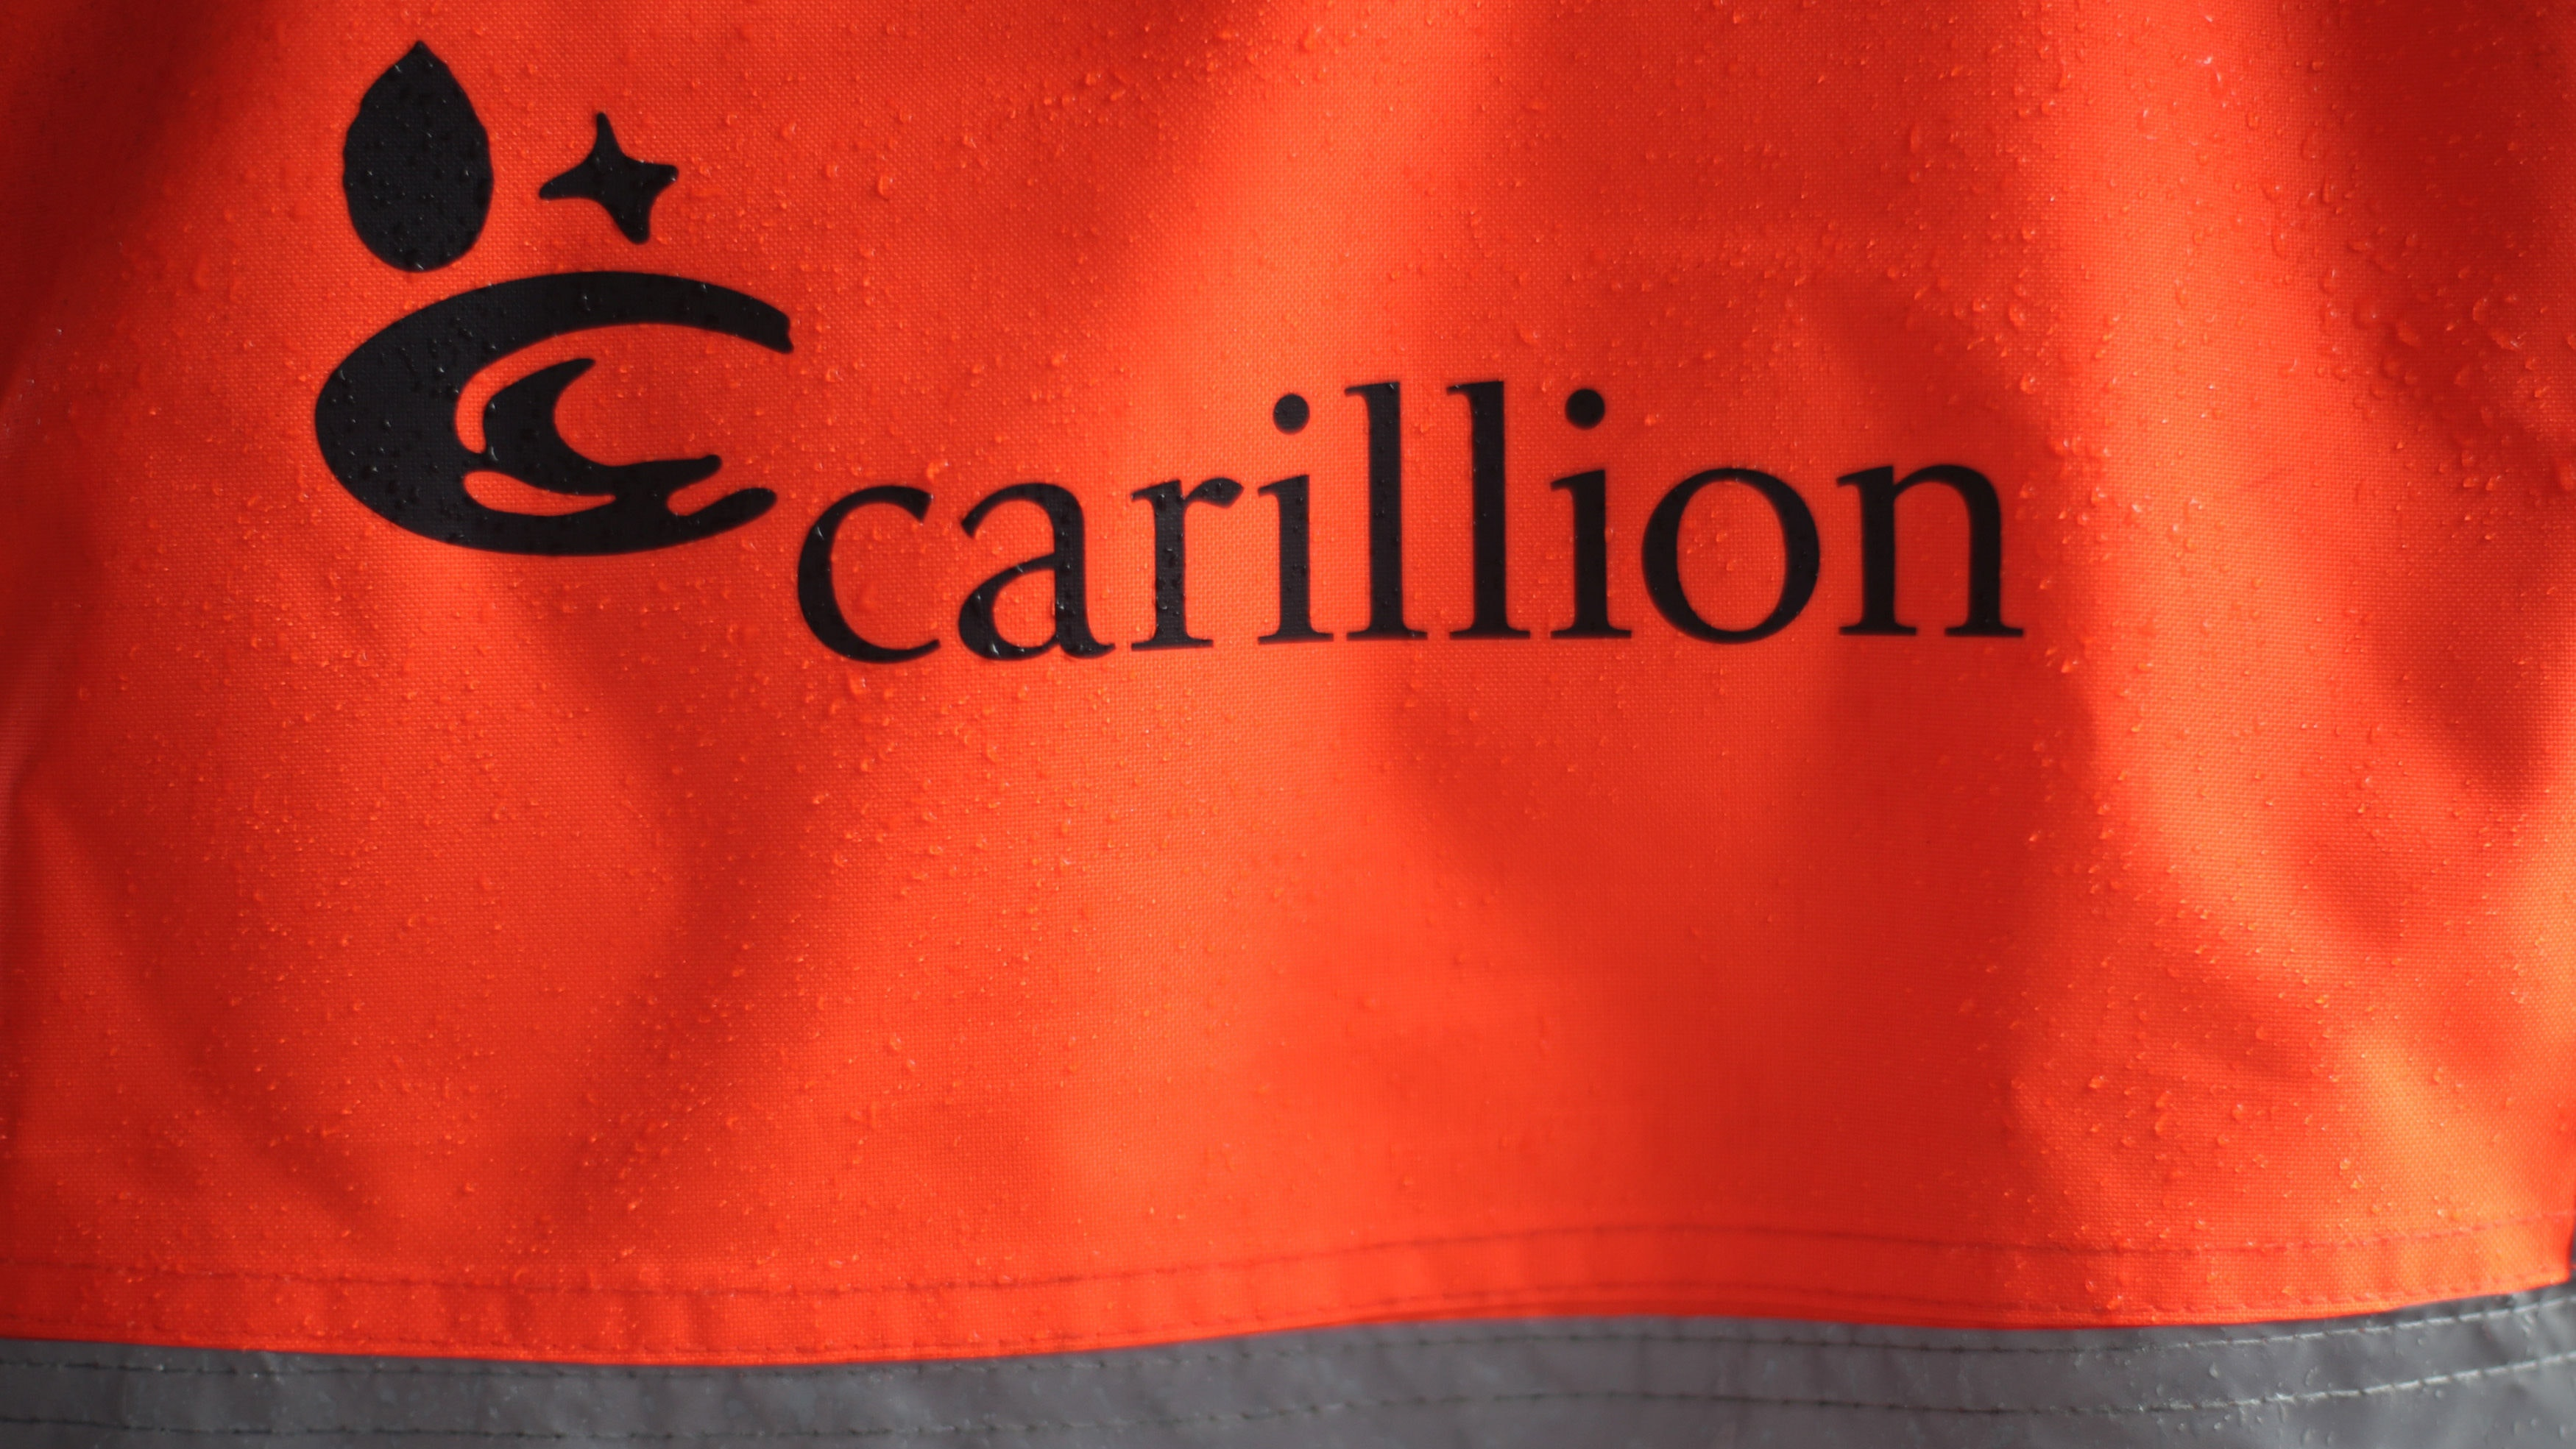 Carillion collapse: Auditor KPMG faces accounting investigation